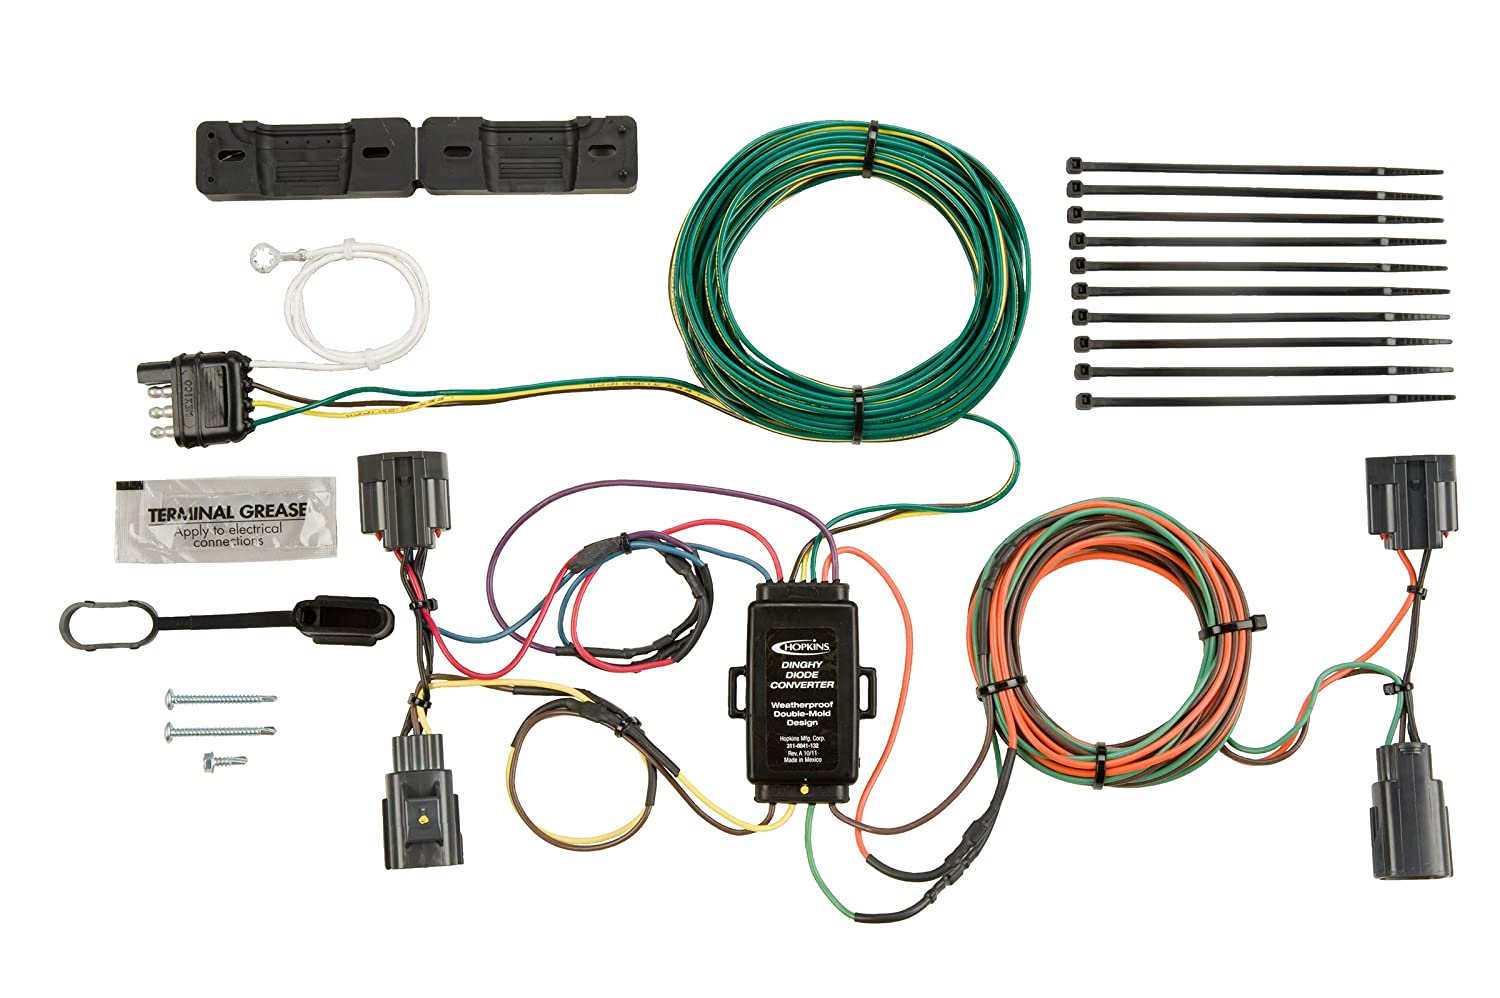 Hopkins 56200 Plug-In Simple Towed Vehicle Wiring Kit